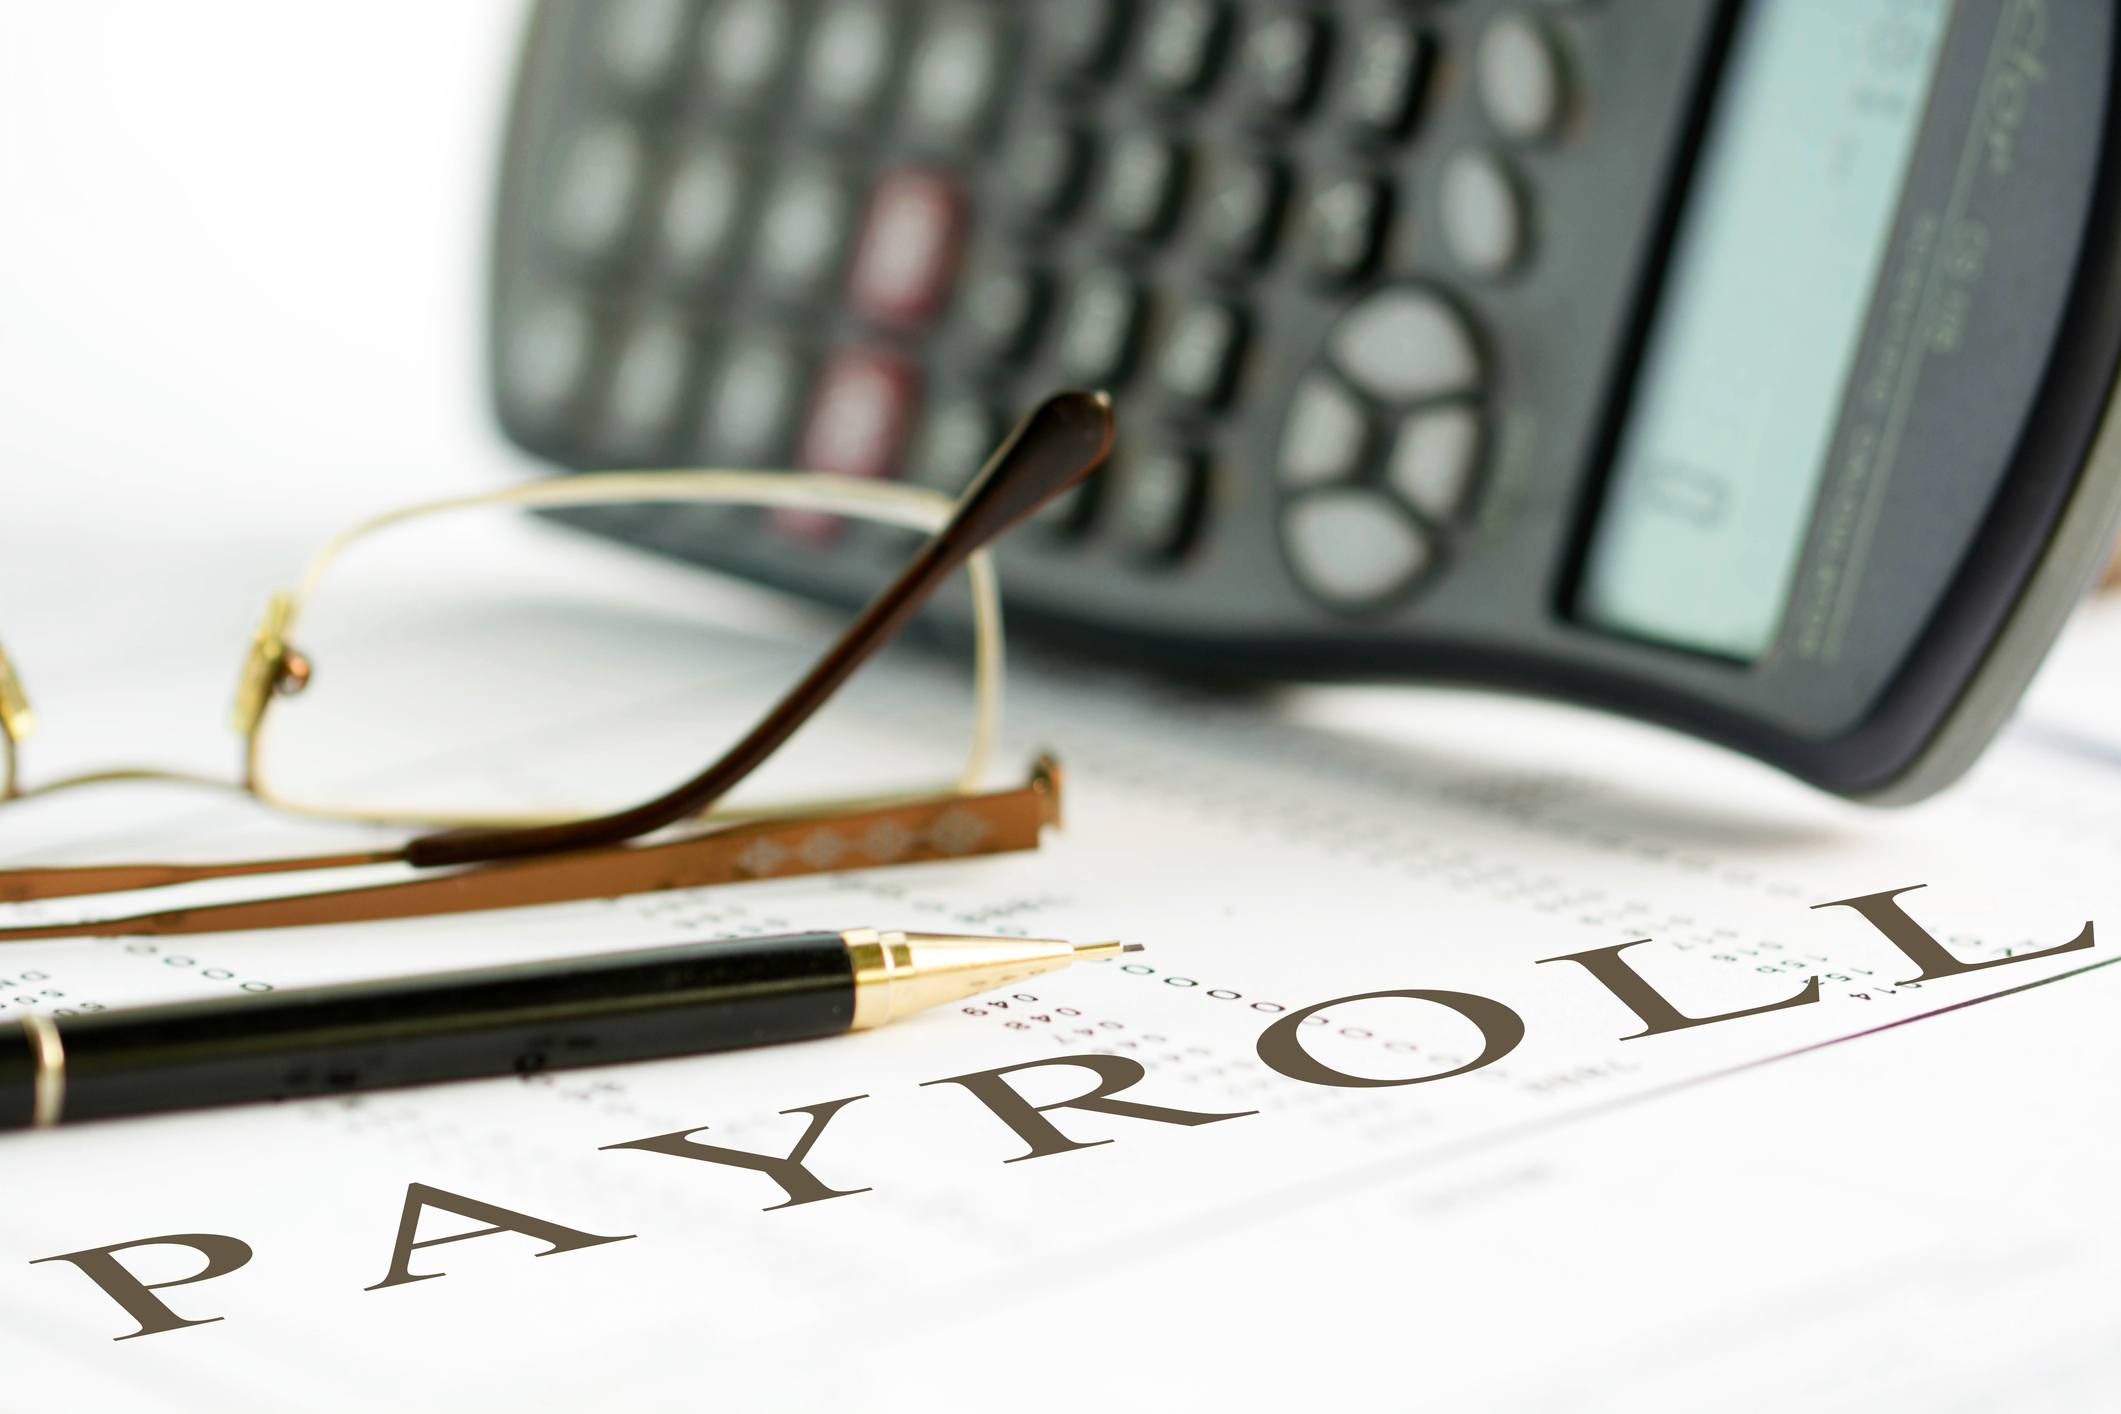 payroll documents with pen and calculator